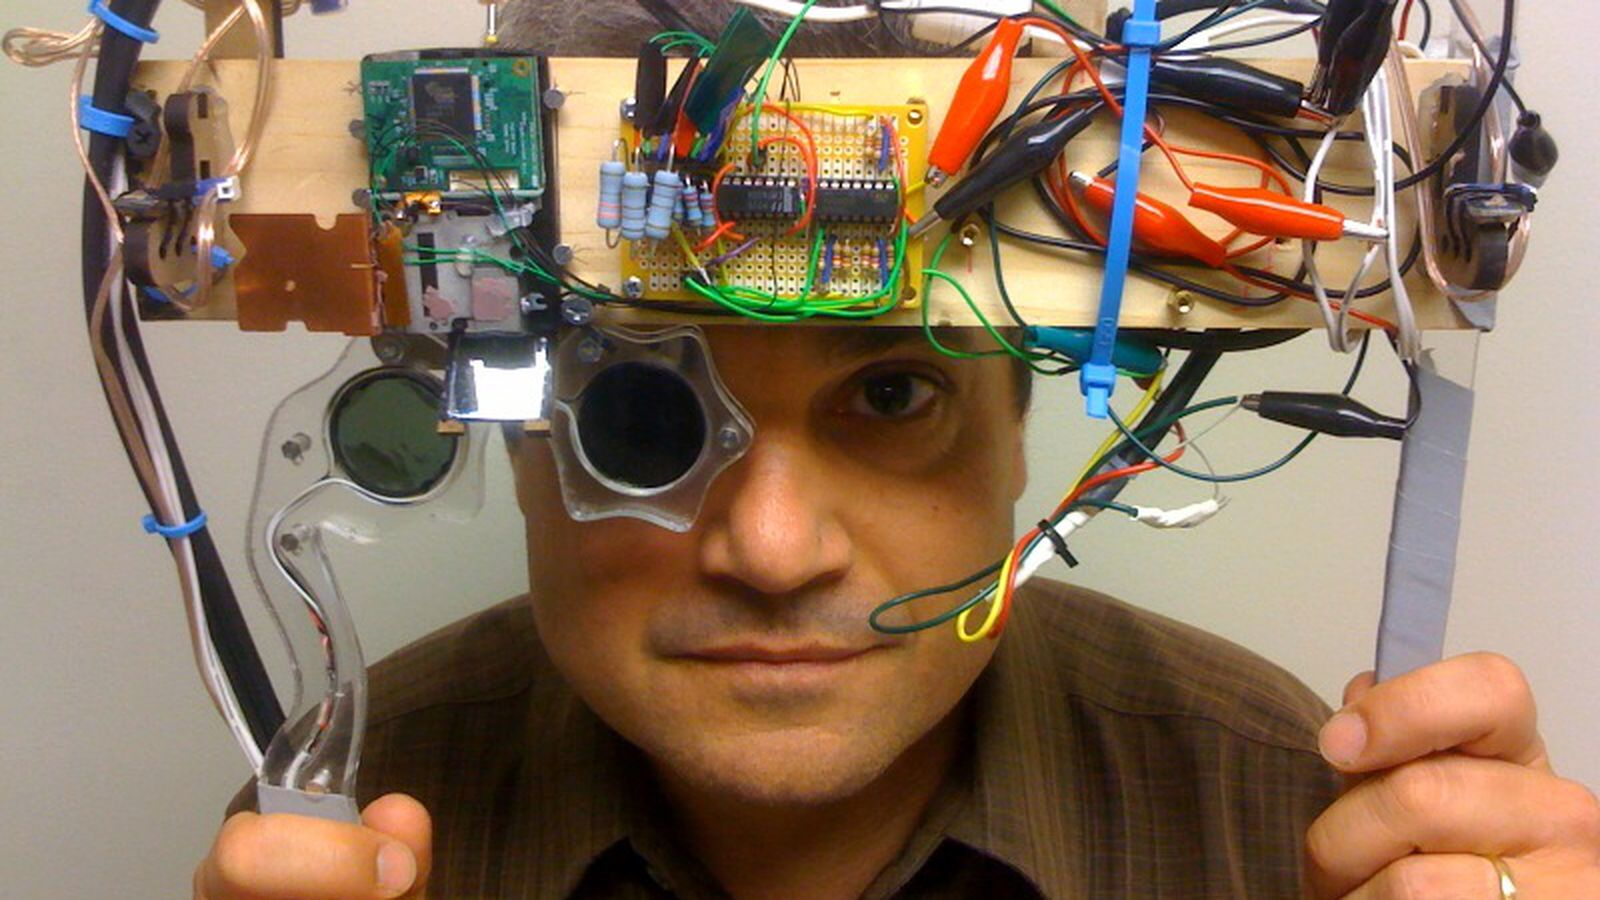 Palmer Luckey's mentor, VR pioneer moves to Microsoft